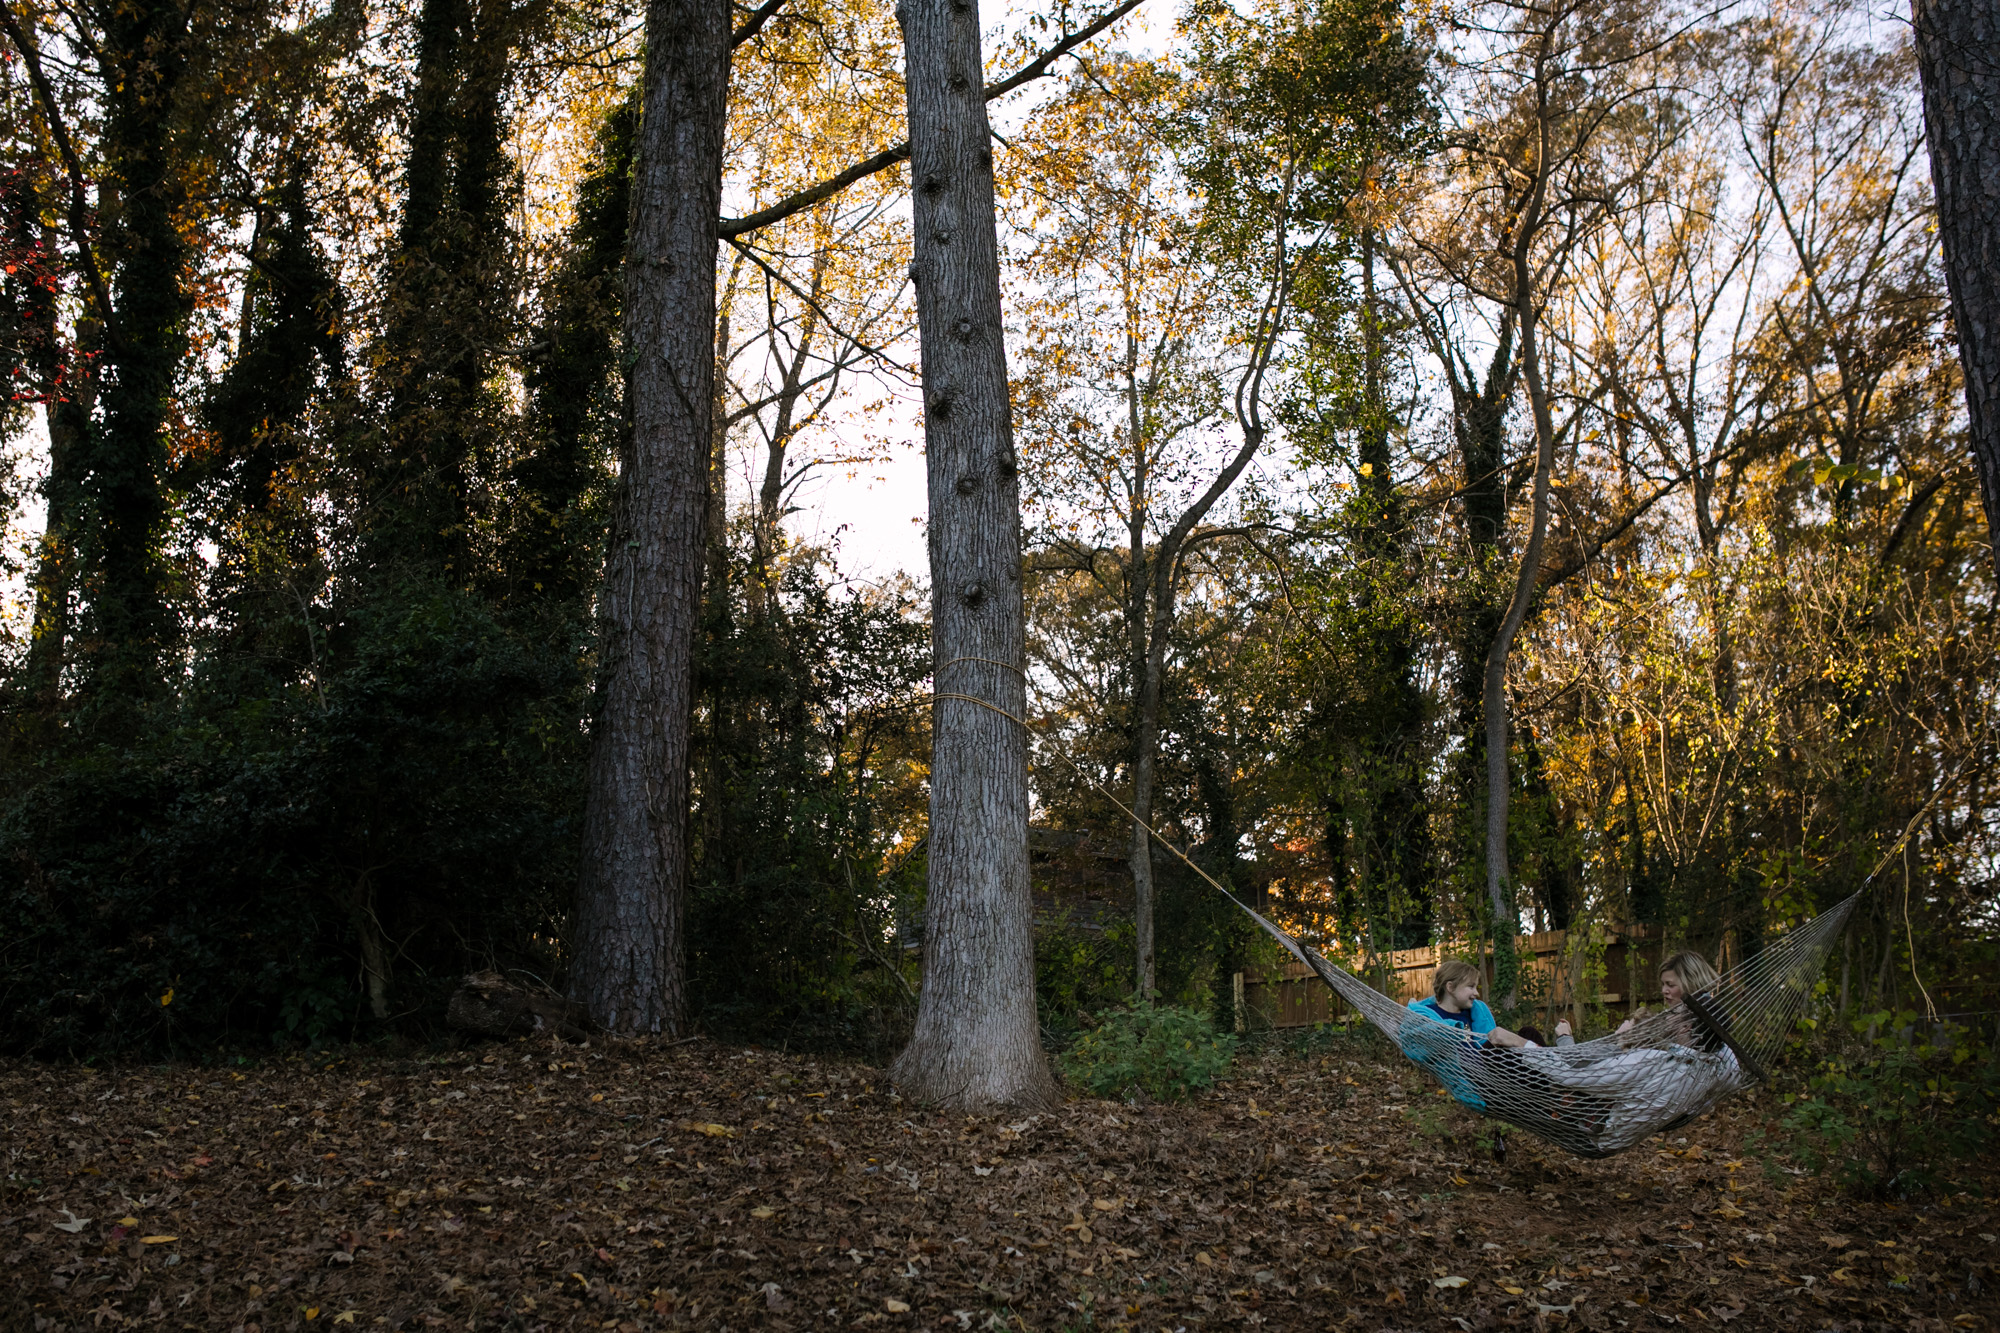 A family on a hammock with big trees